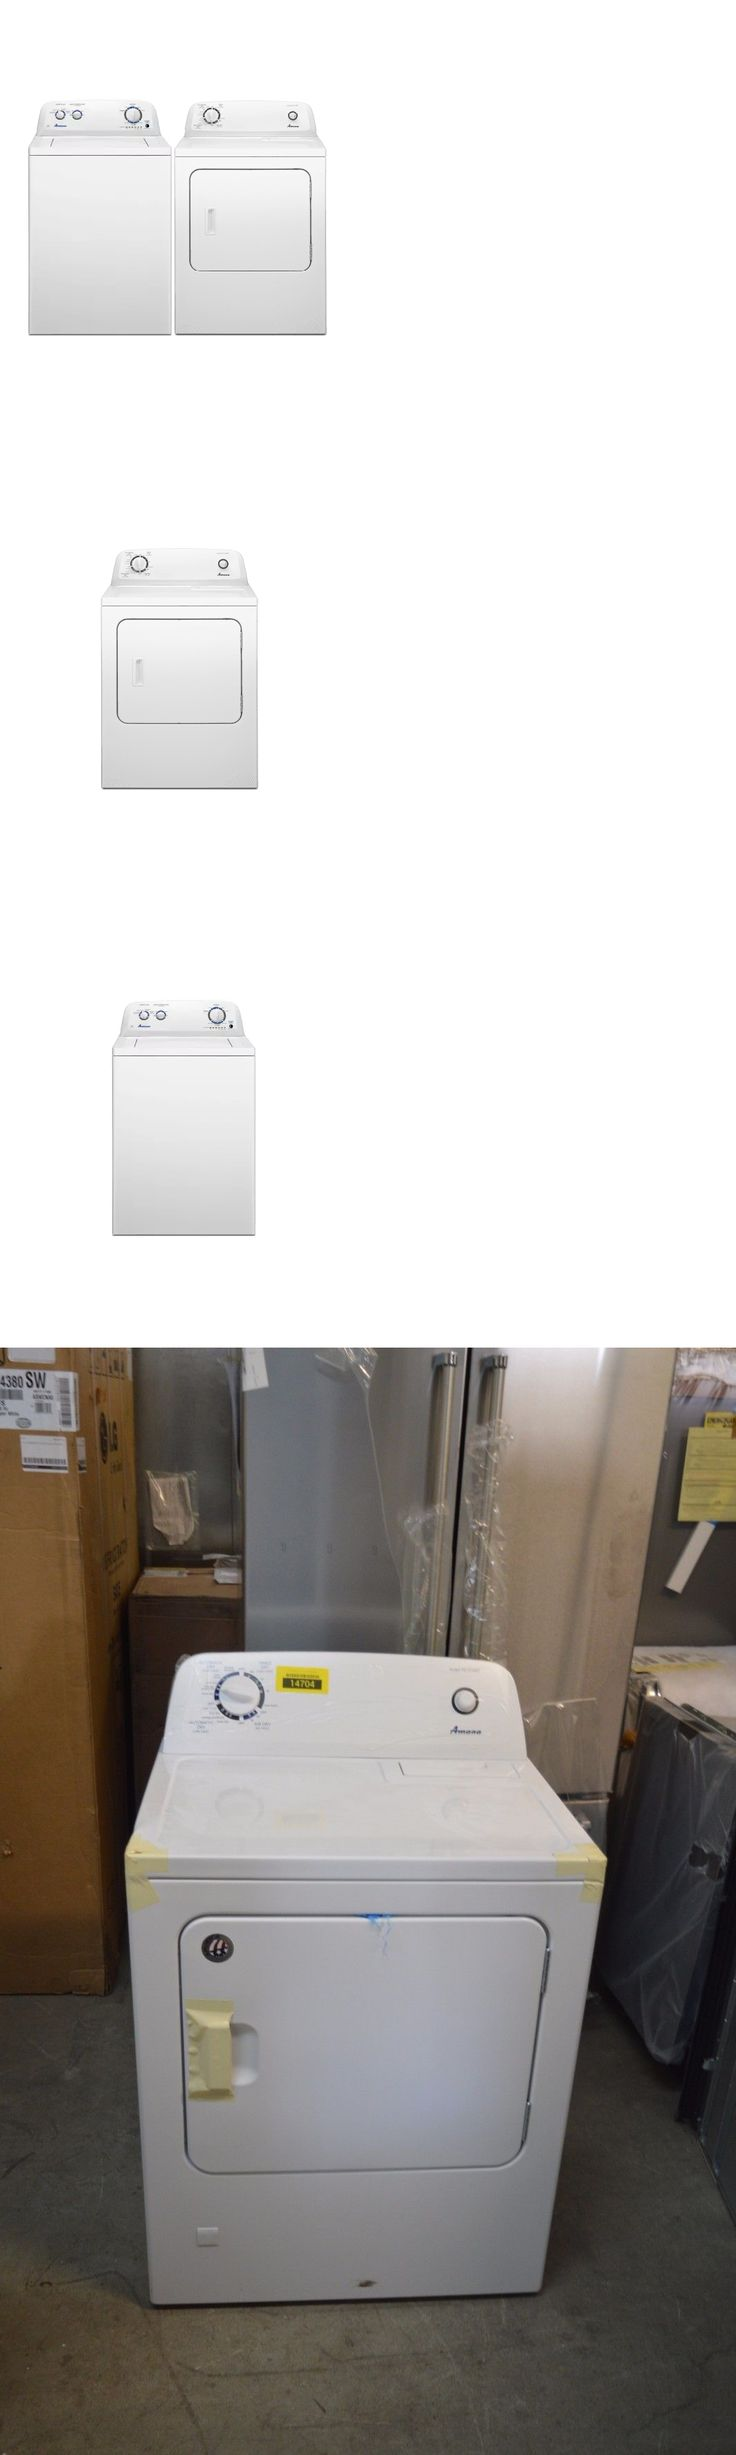 Washer and Dryer Sets 71257: Amana Ntw4516fw Ngd4655ew 29 White Front-Load Gas Dryer Top Load Washer Al2 -> BUY IT NOW ONLY: $529 on eBay!